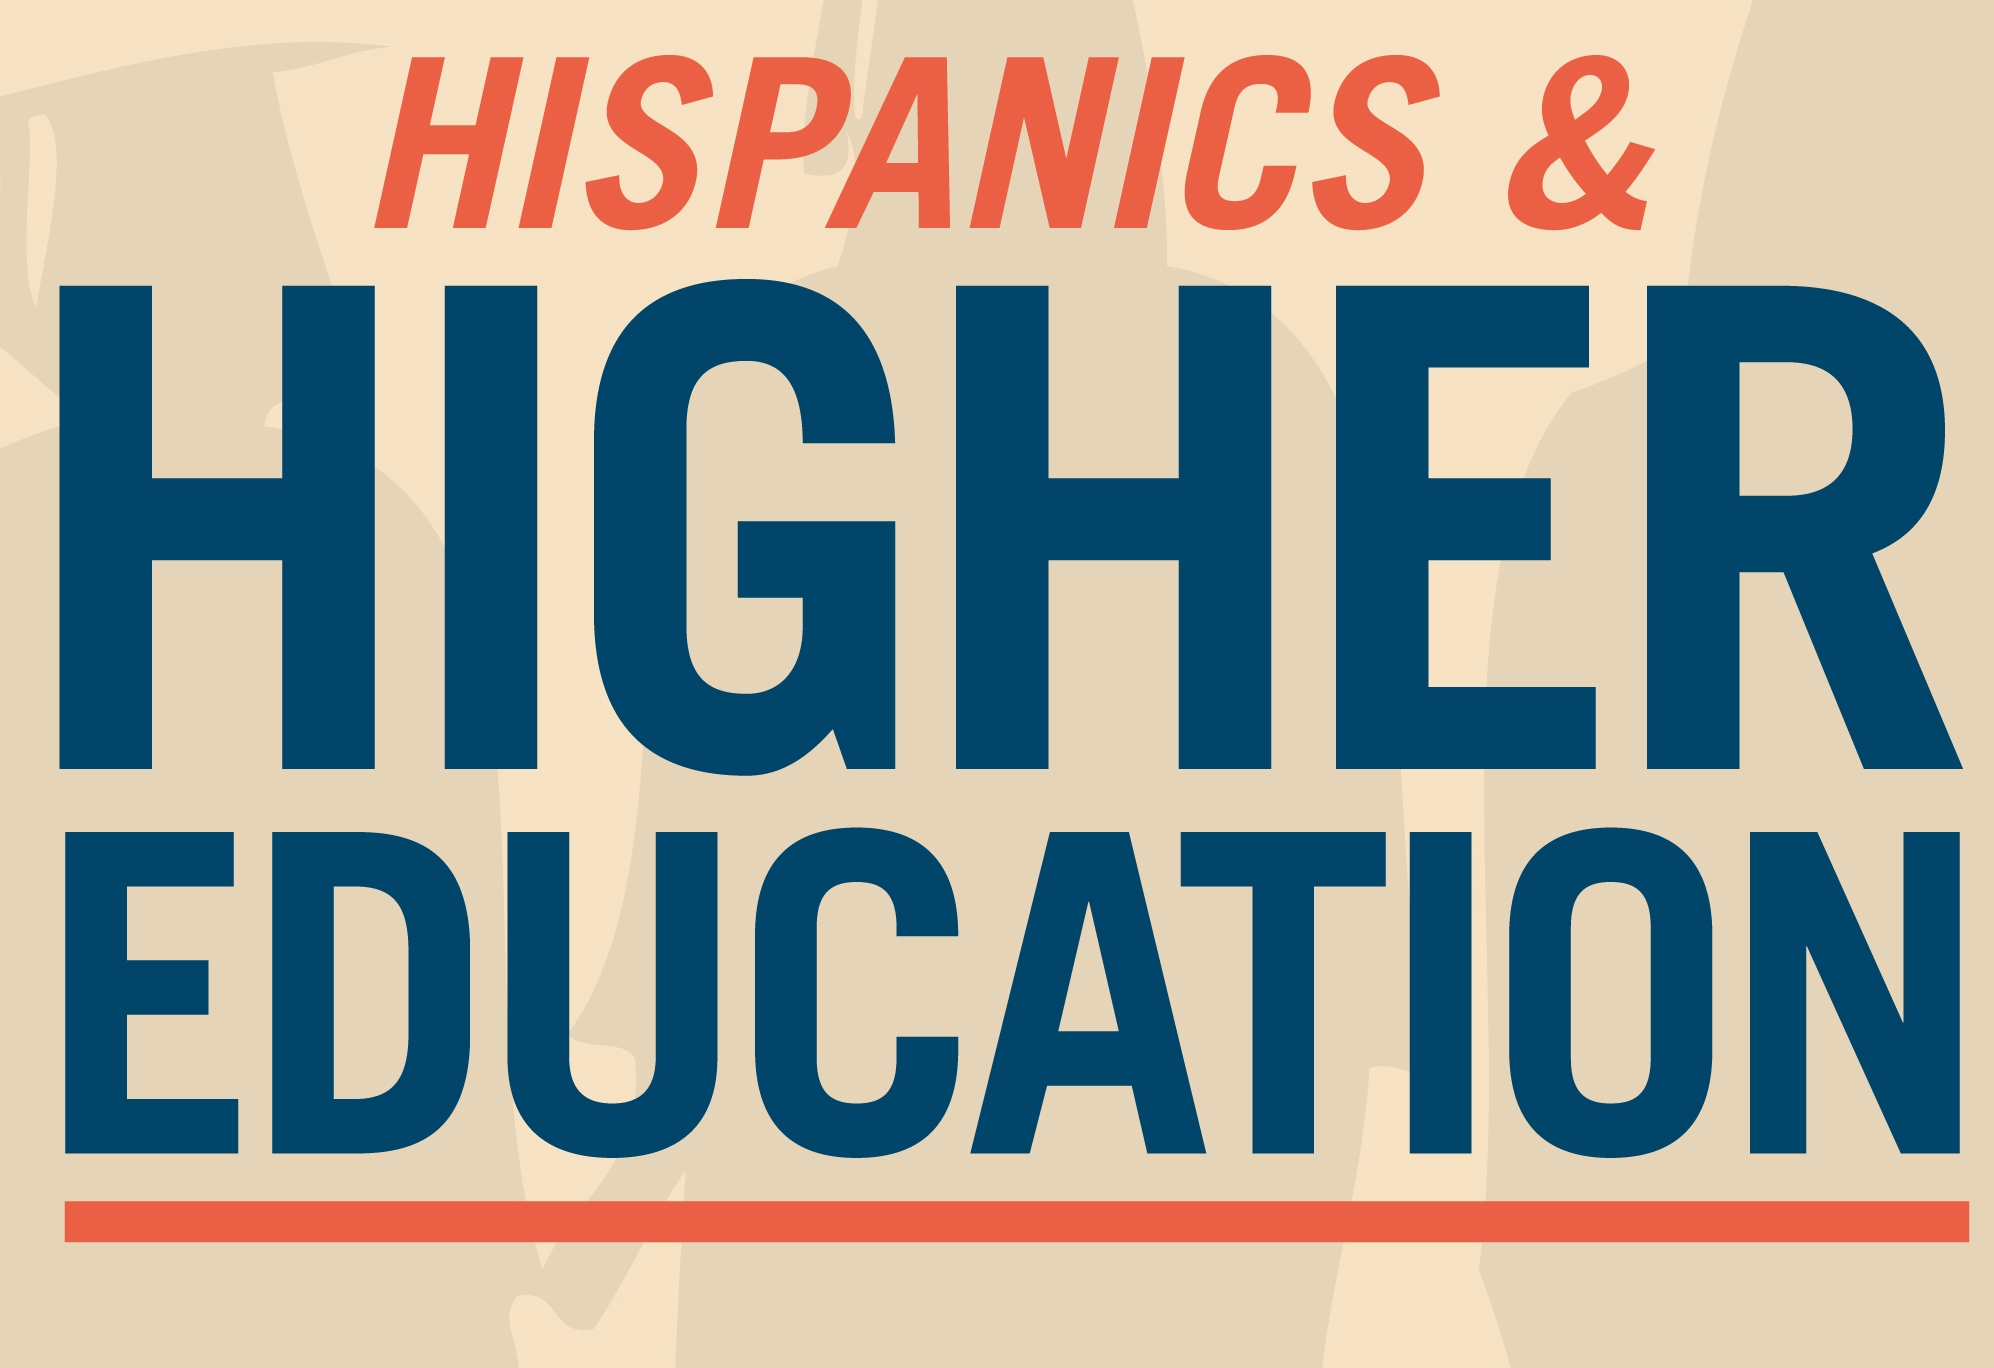 Hispanics and Higher Education (Infographic)